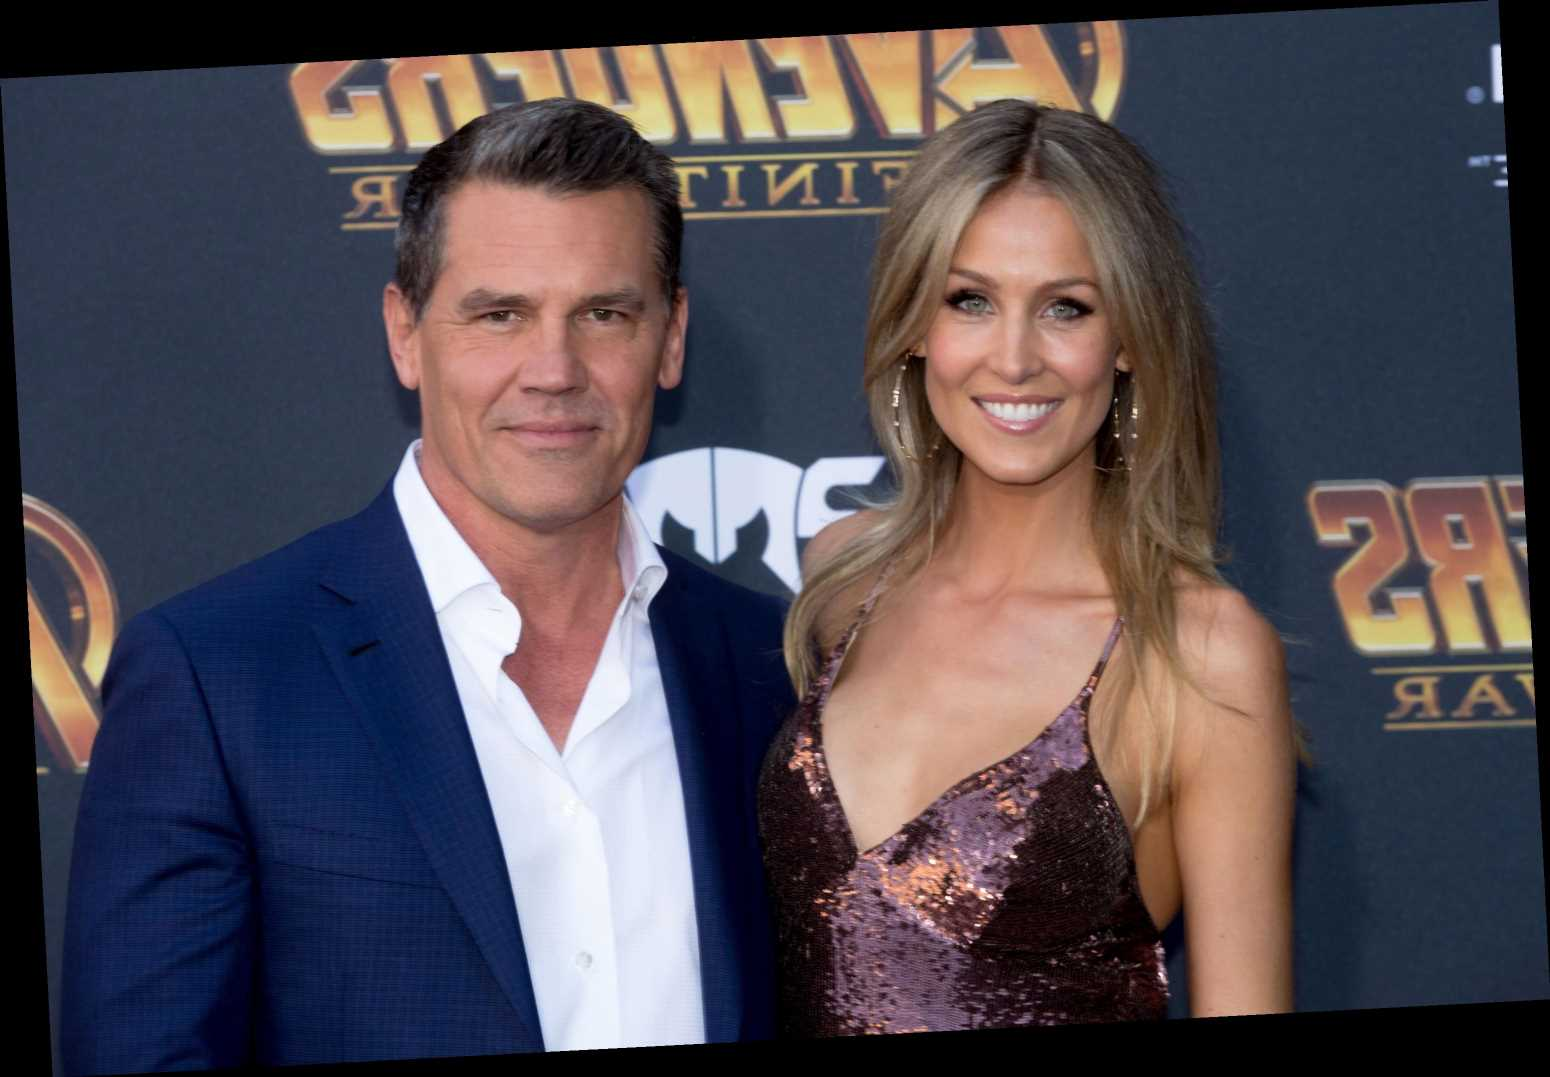 Josh Brolin and wife Kathryn Boyd expecting second child together